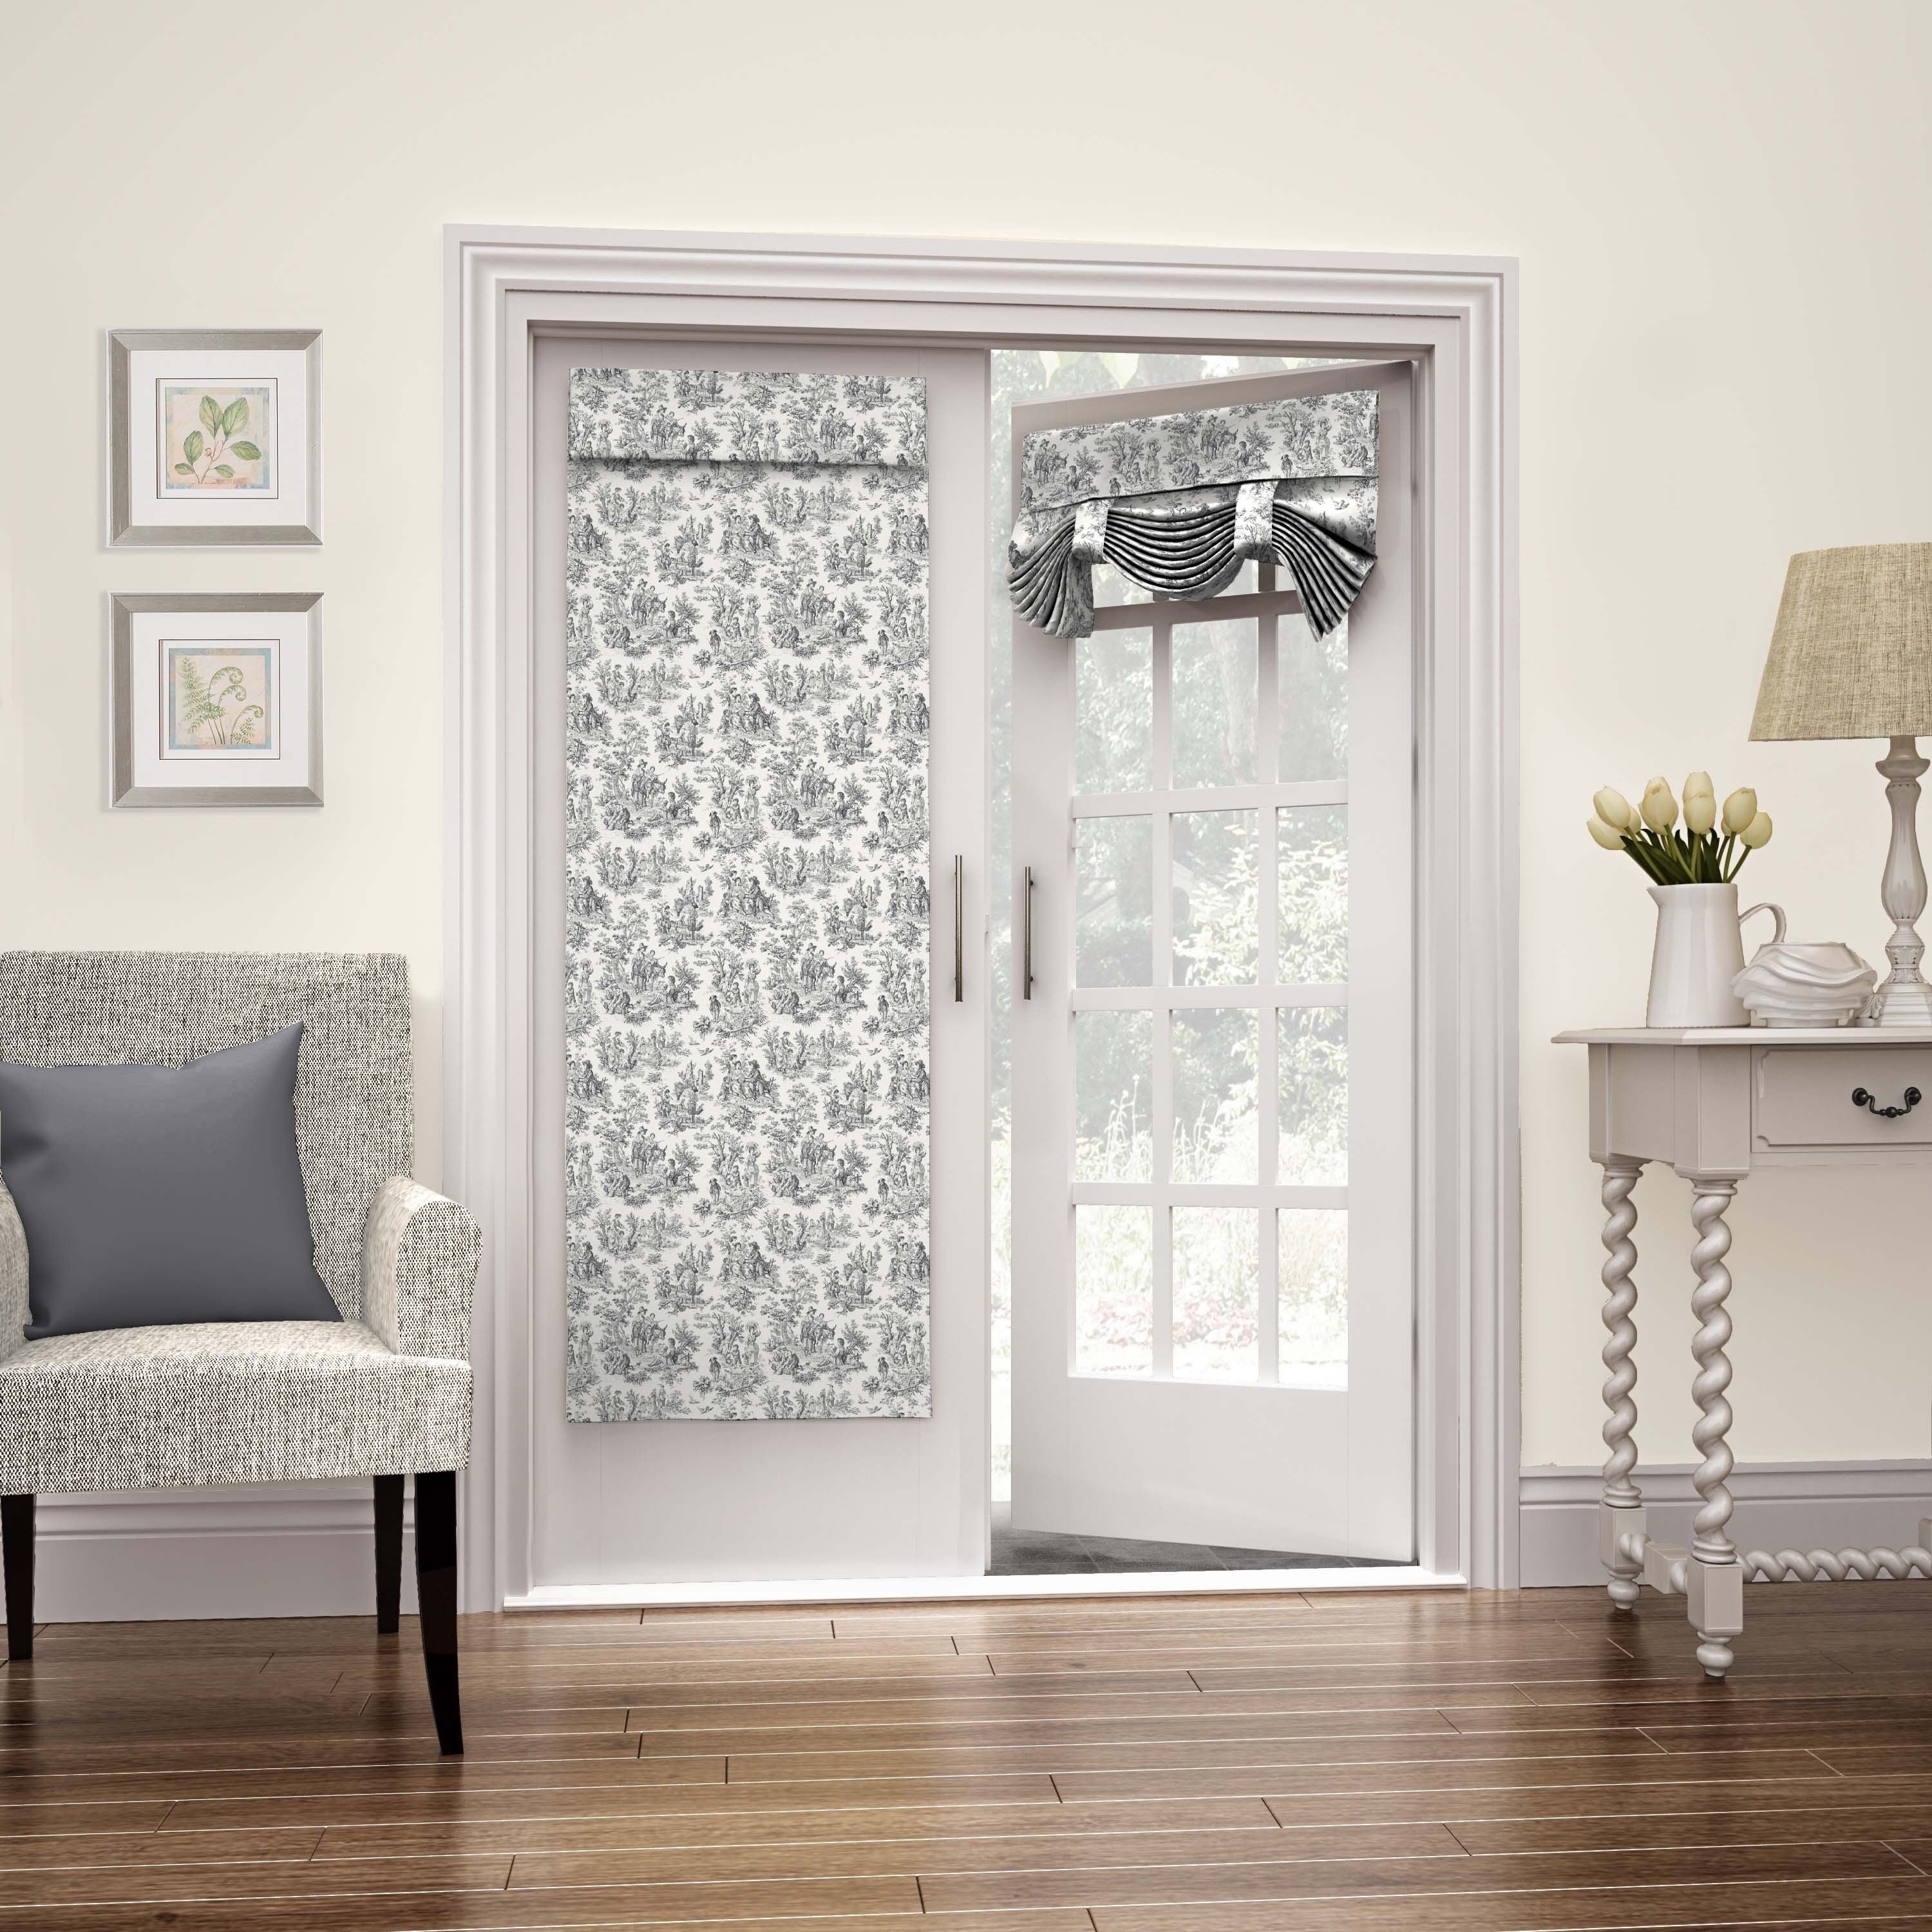 Exquisite And Versatile The Charmed Life French Door